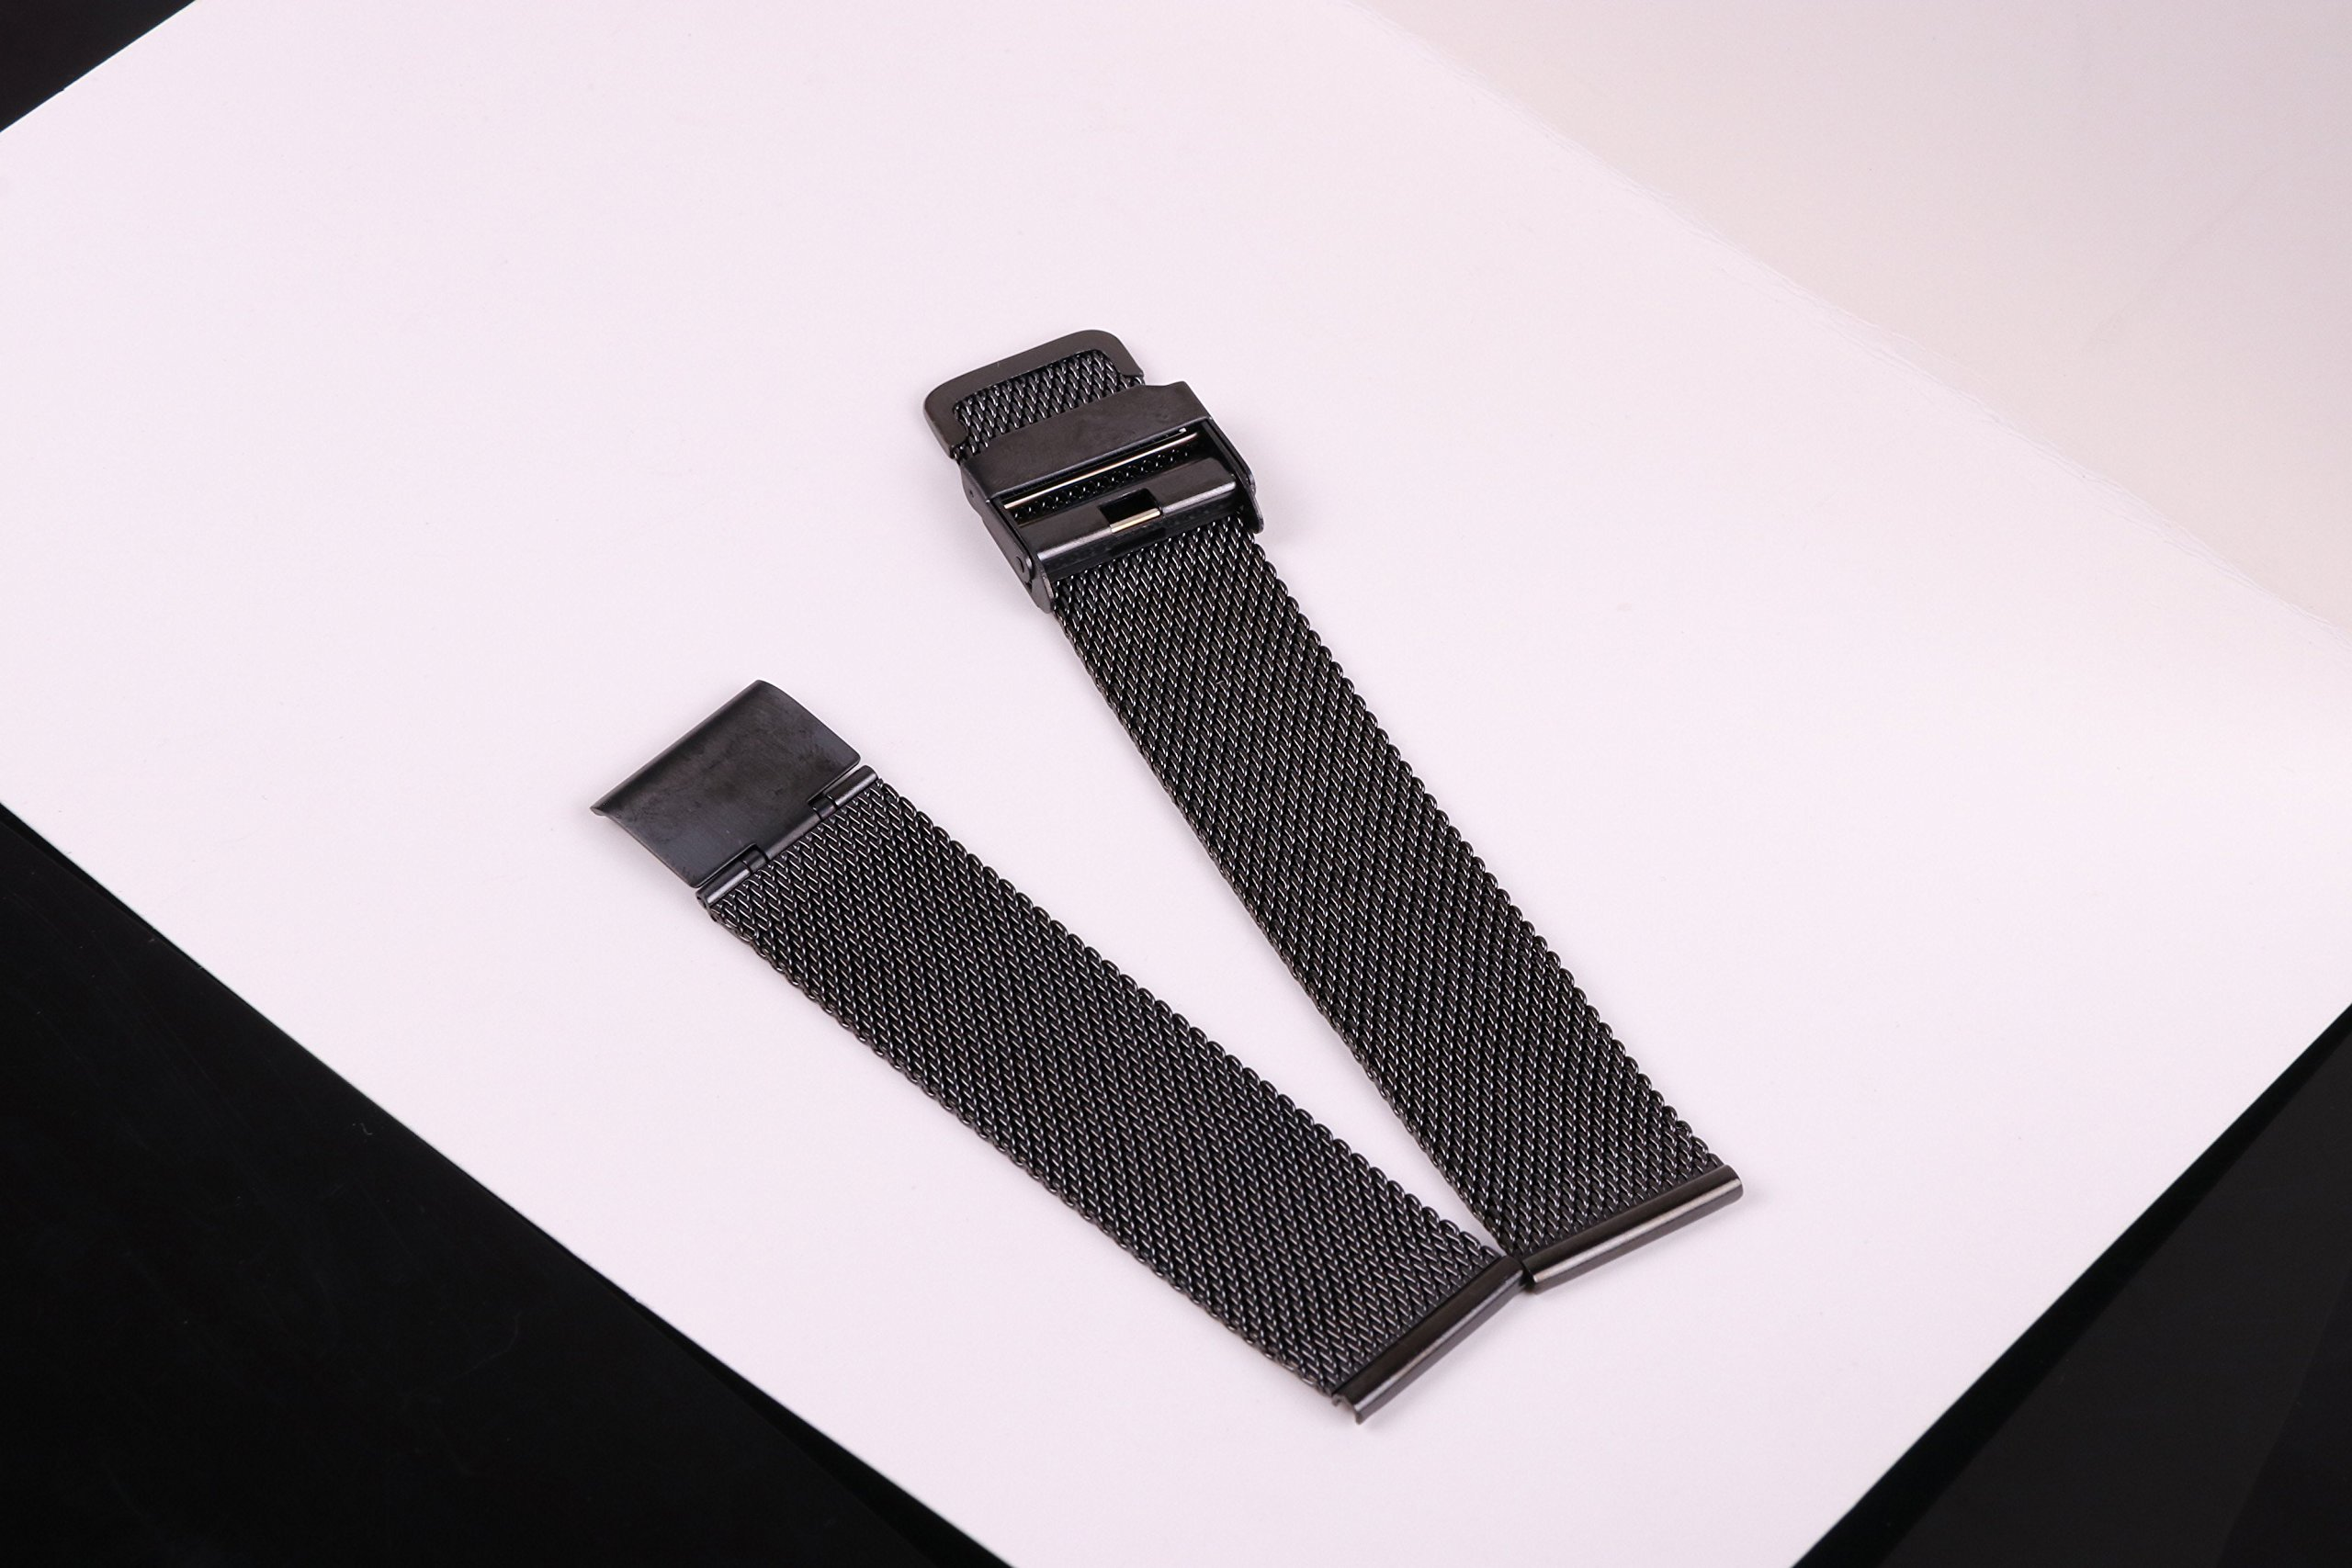 20mm Stainless Steel Mesh Watch Band Black Chainmail Mesh Strap Replacement for Business Sport Watches by autulet (Image #4)